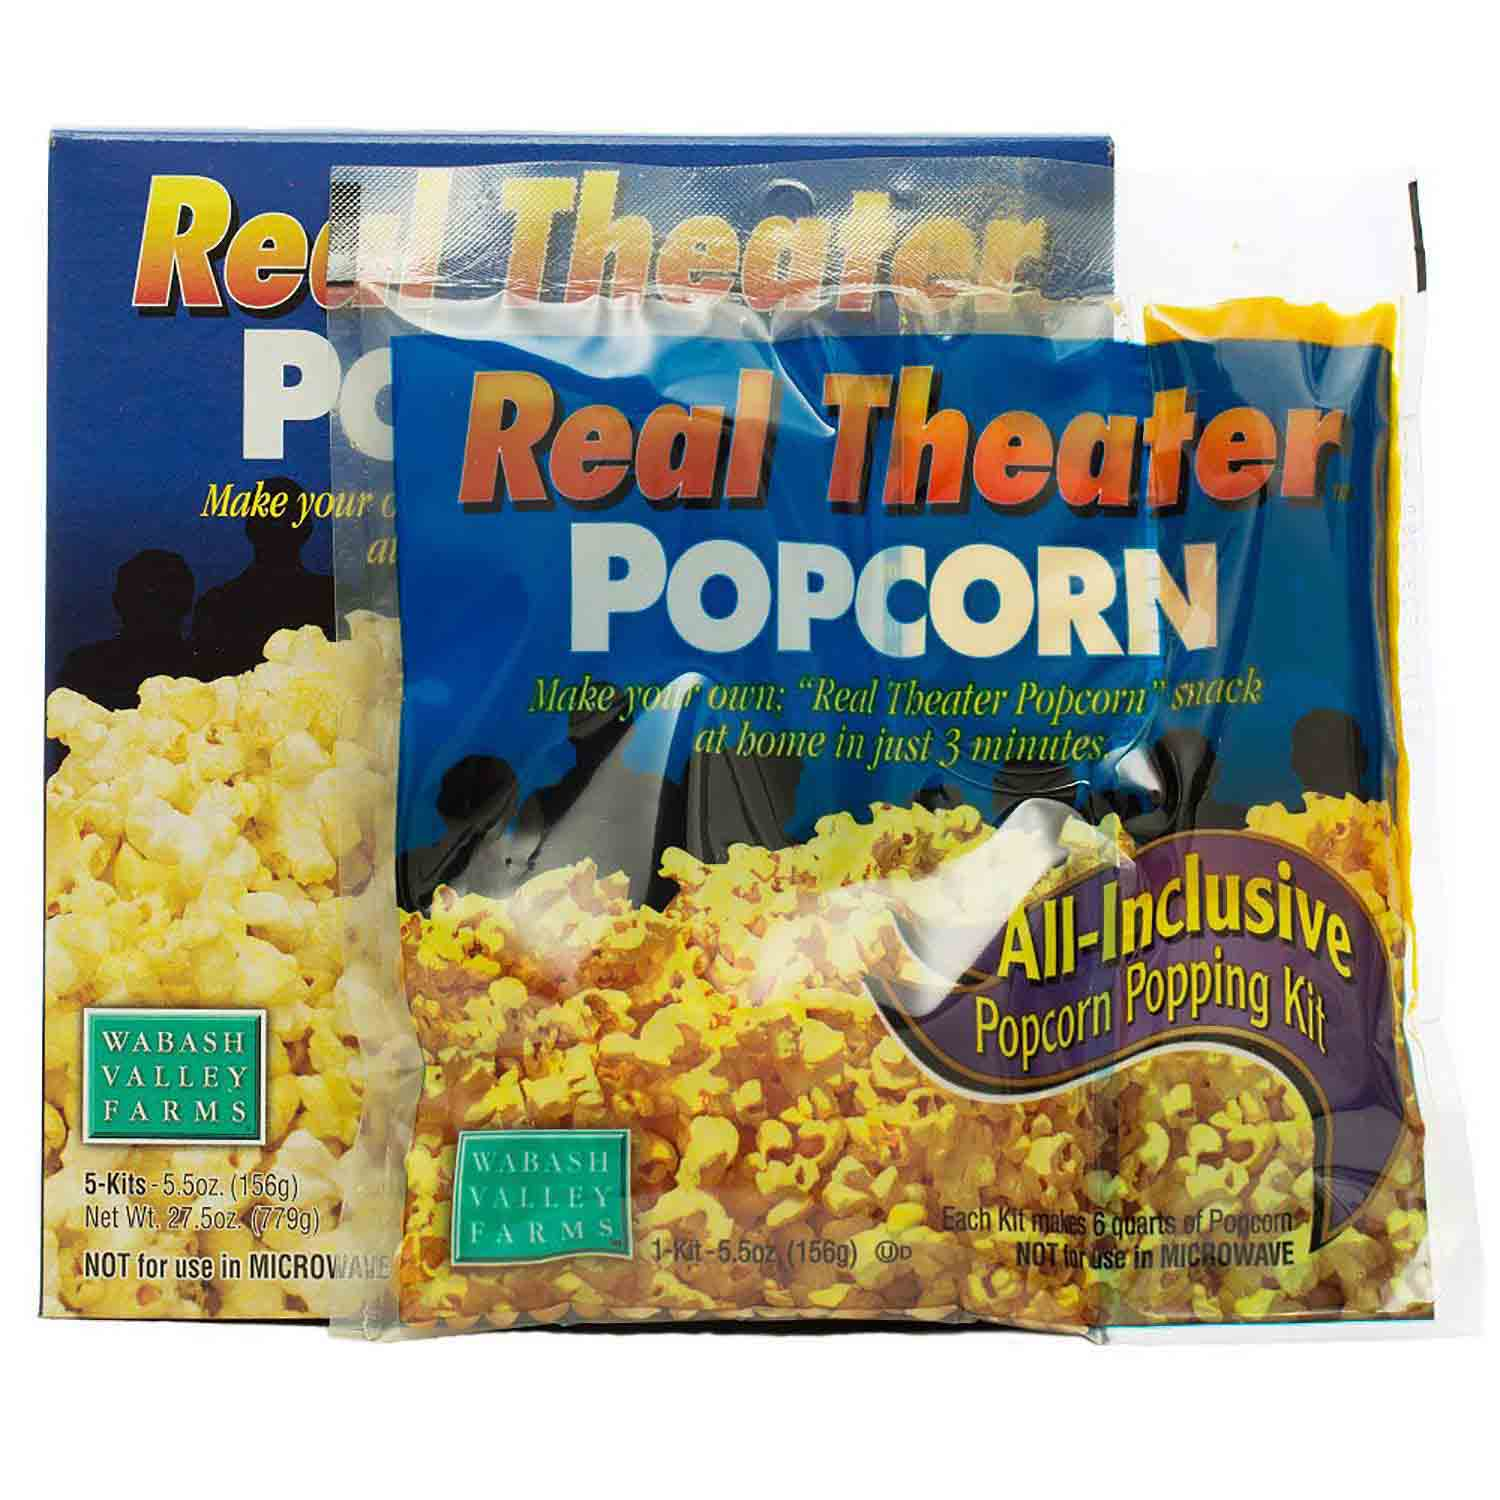 Real Theater Popcorn Pouch